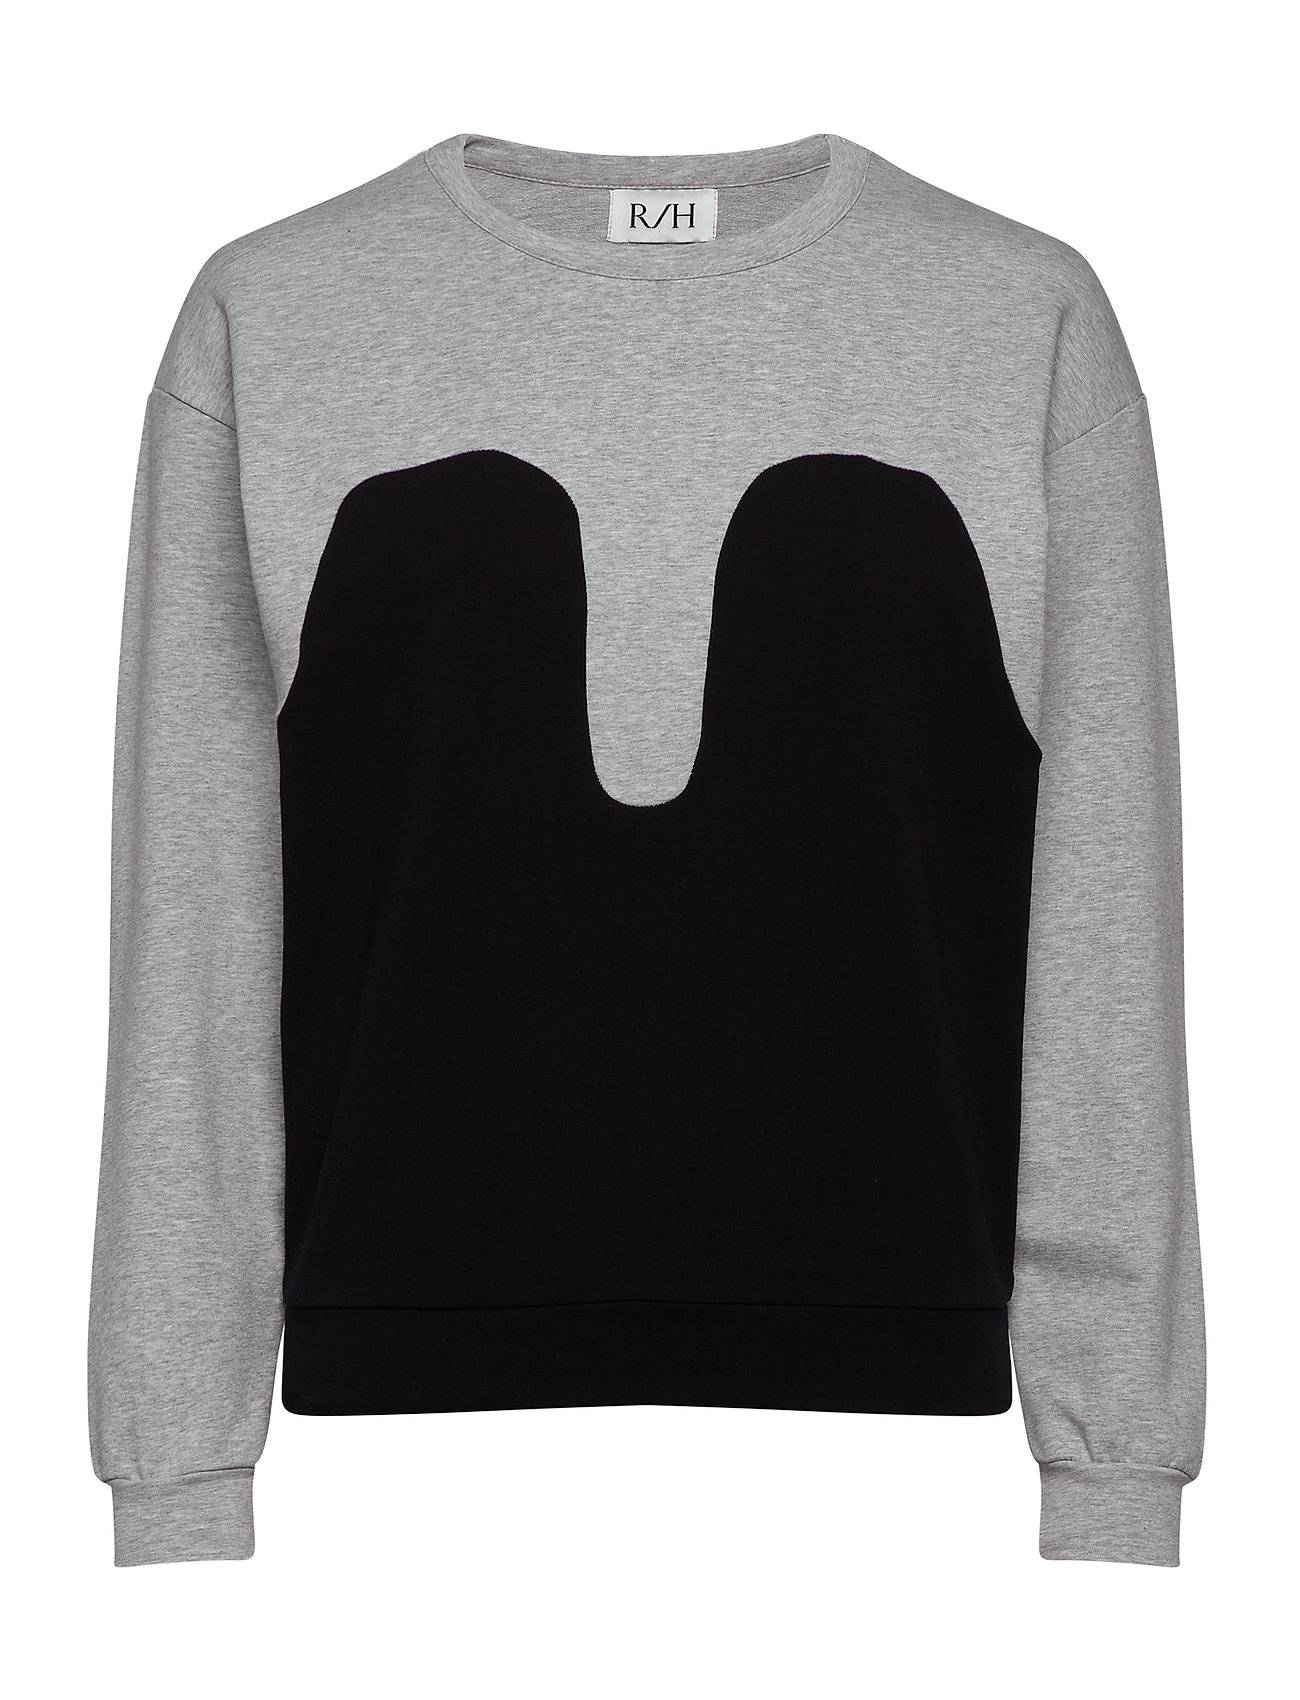 R/H Studio Magic Sweater